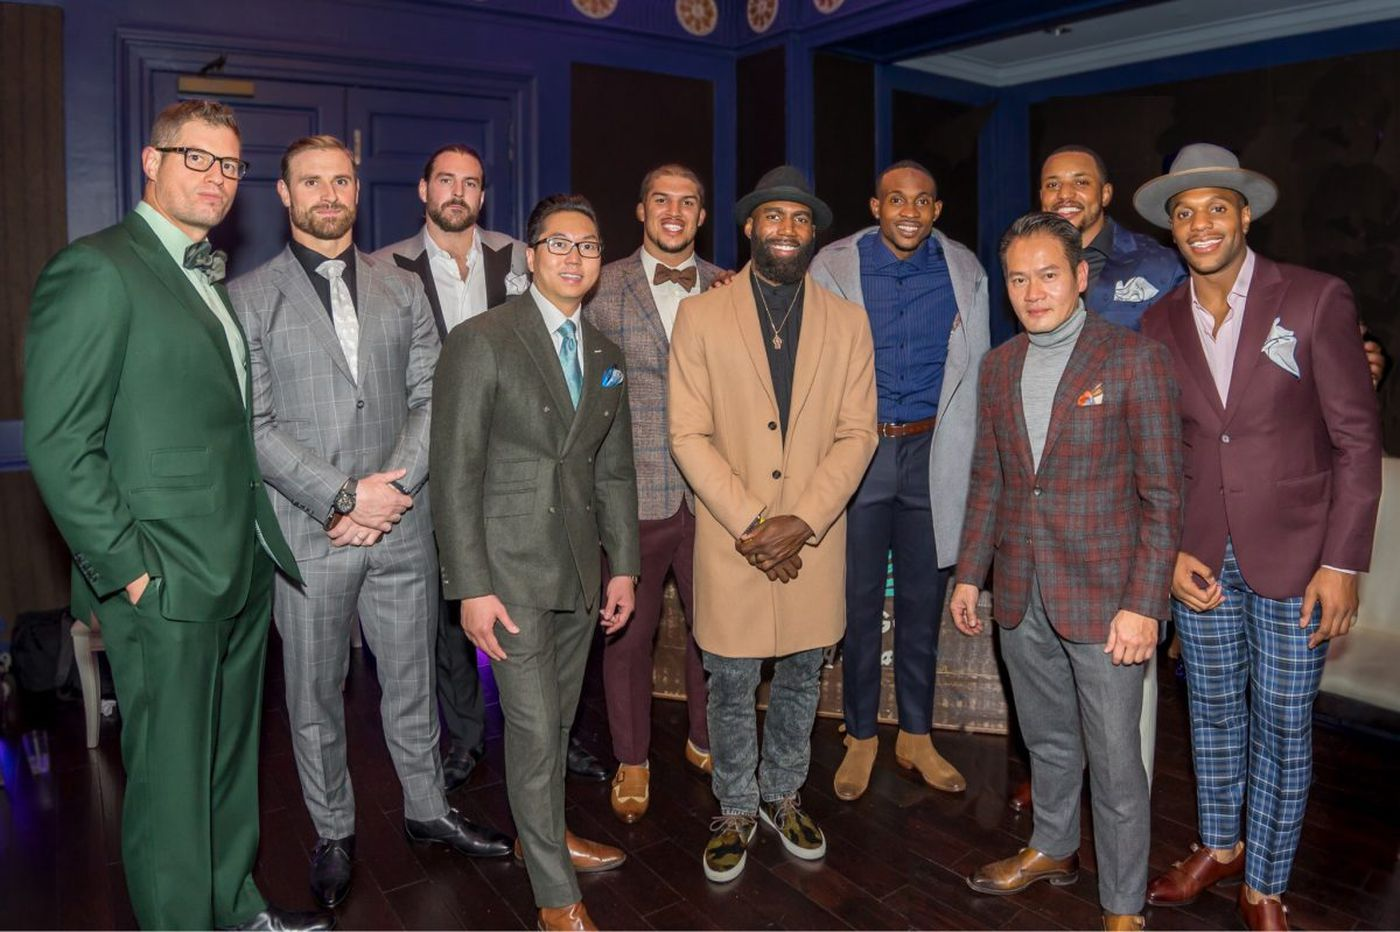 Eagles take the runway for a good cause